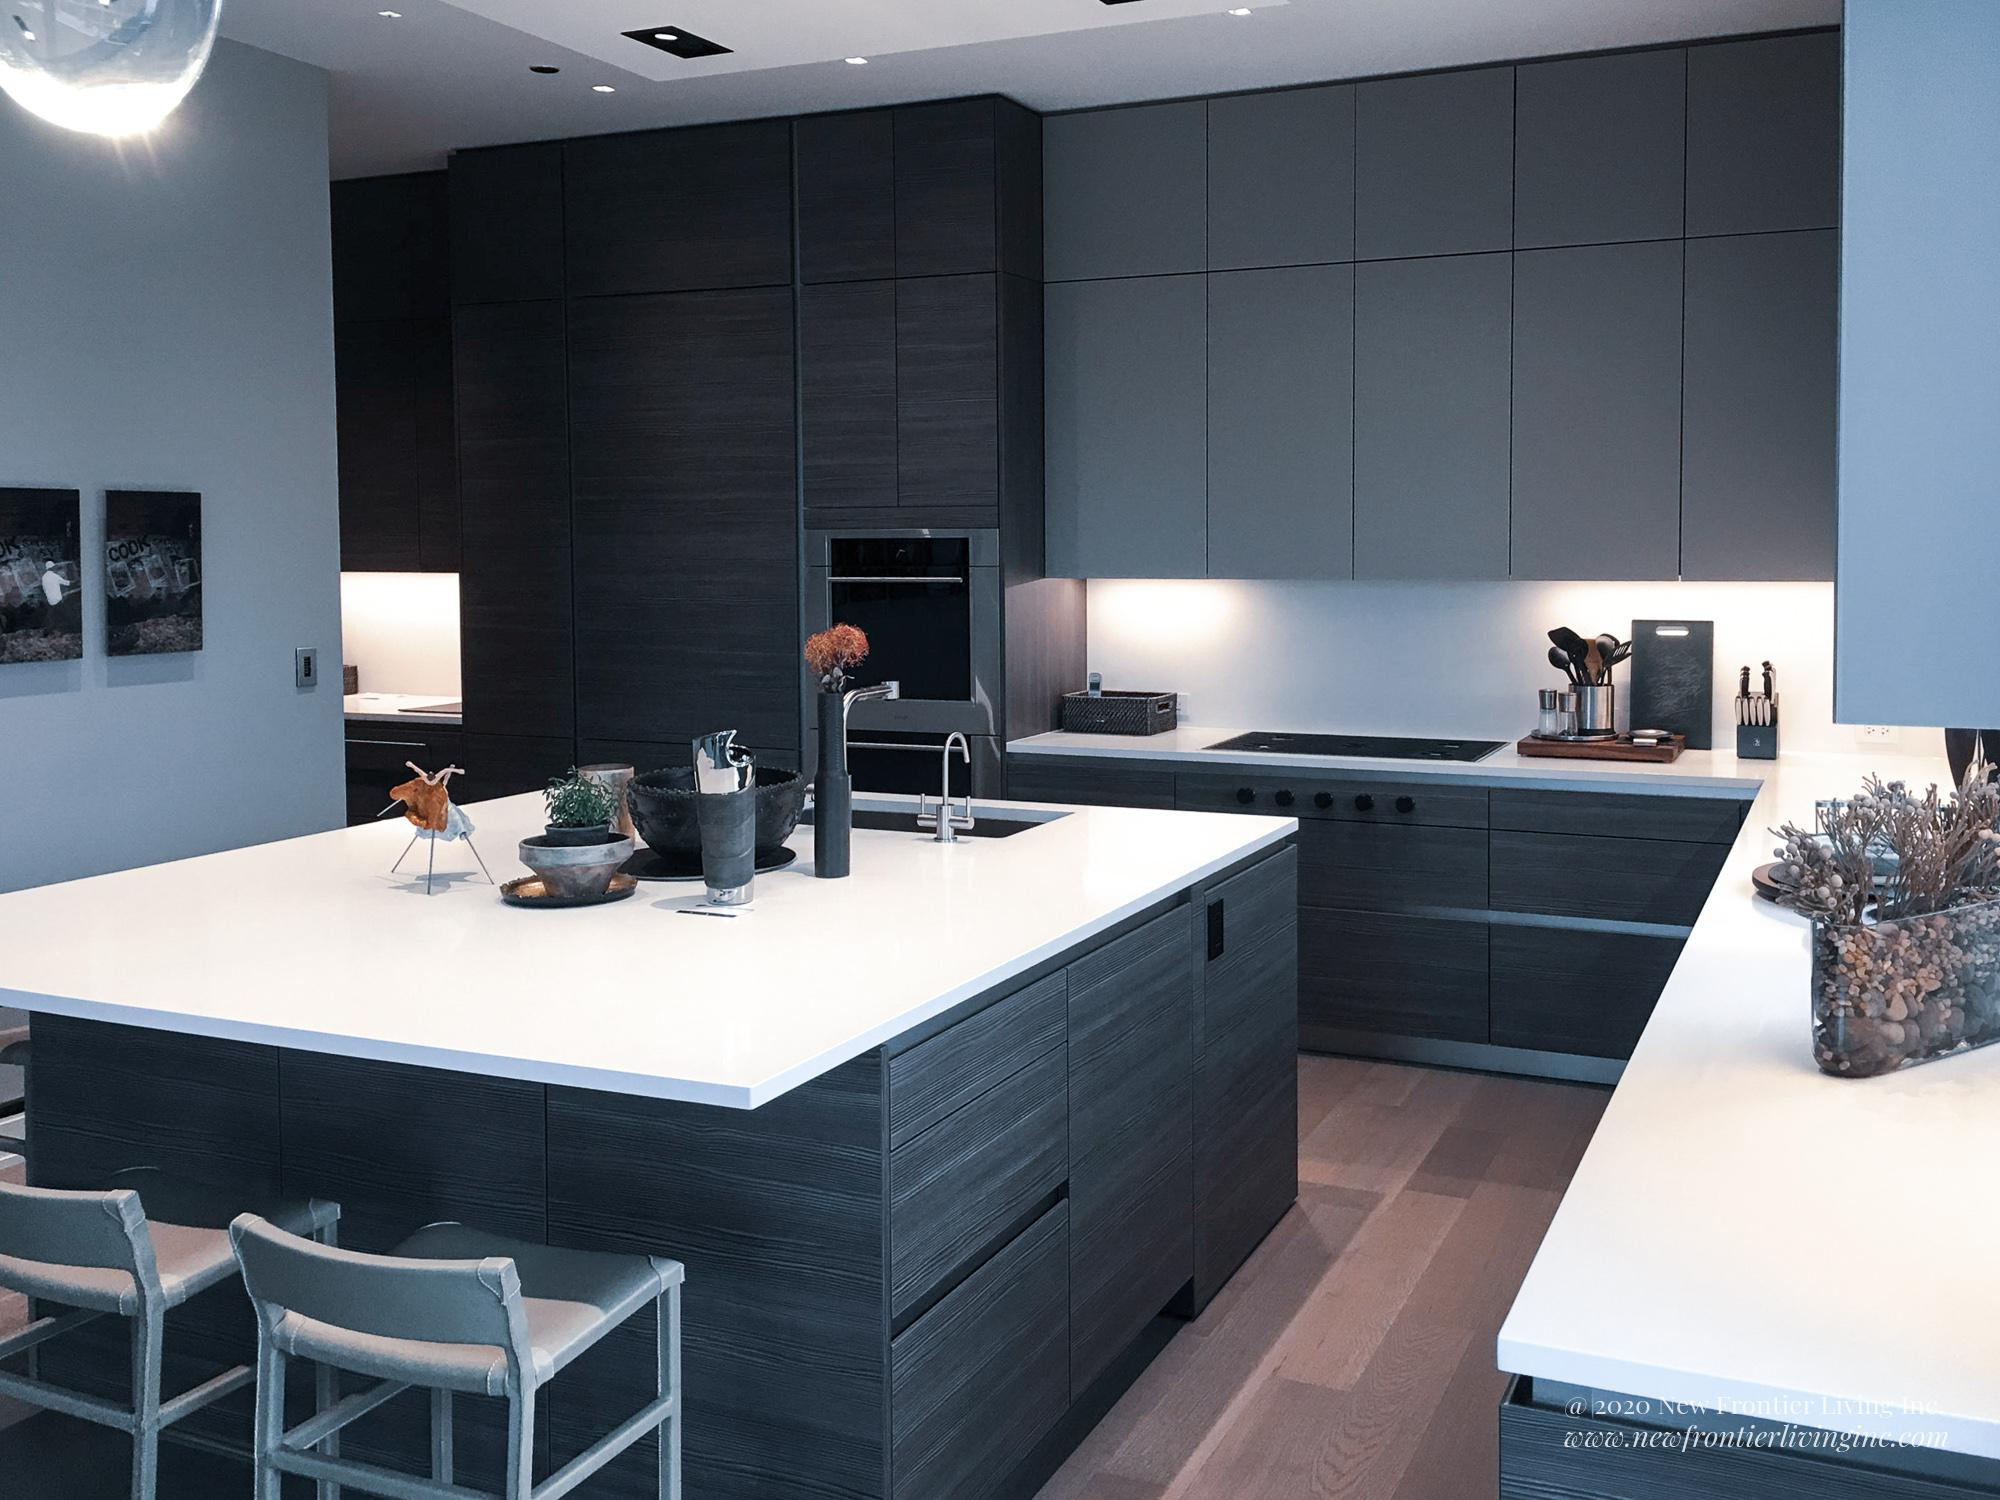 Black kitchen cabinetry with white countertop and square kitchen island